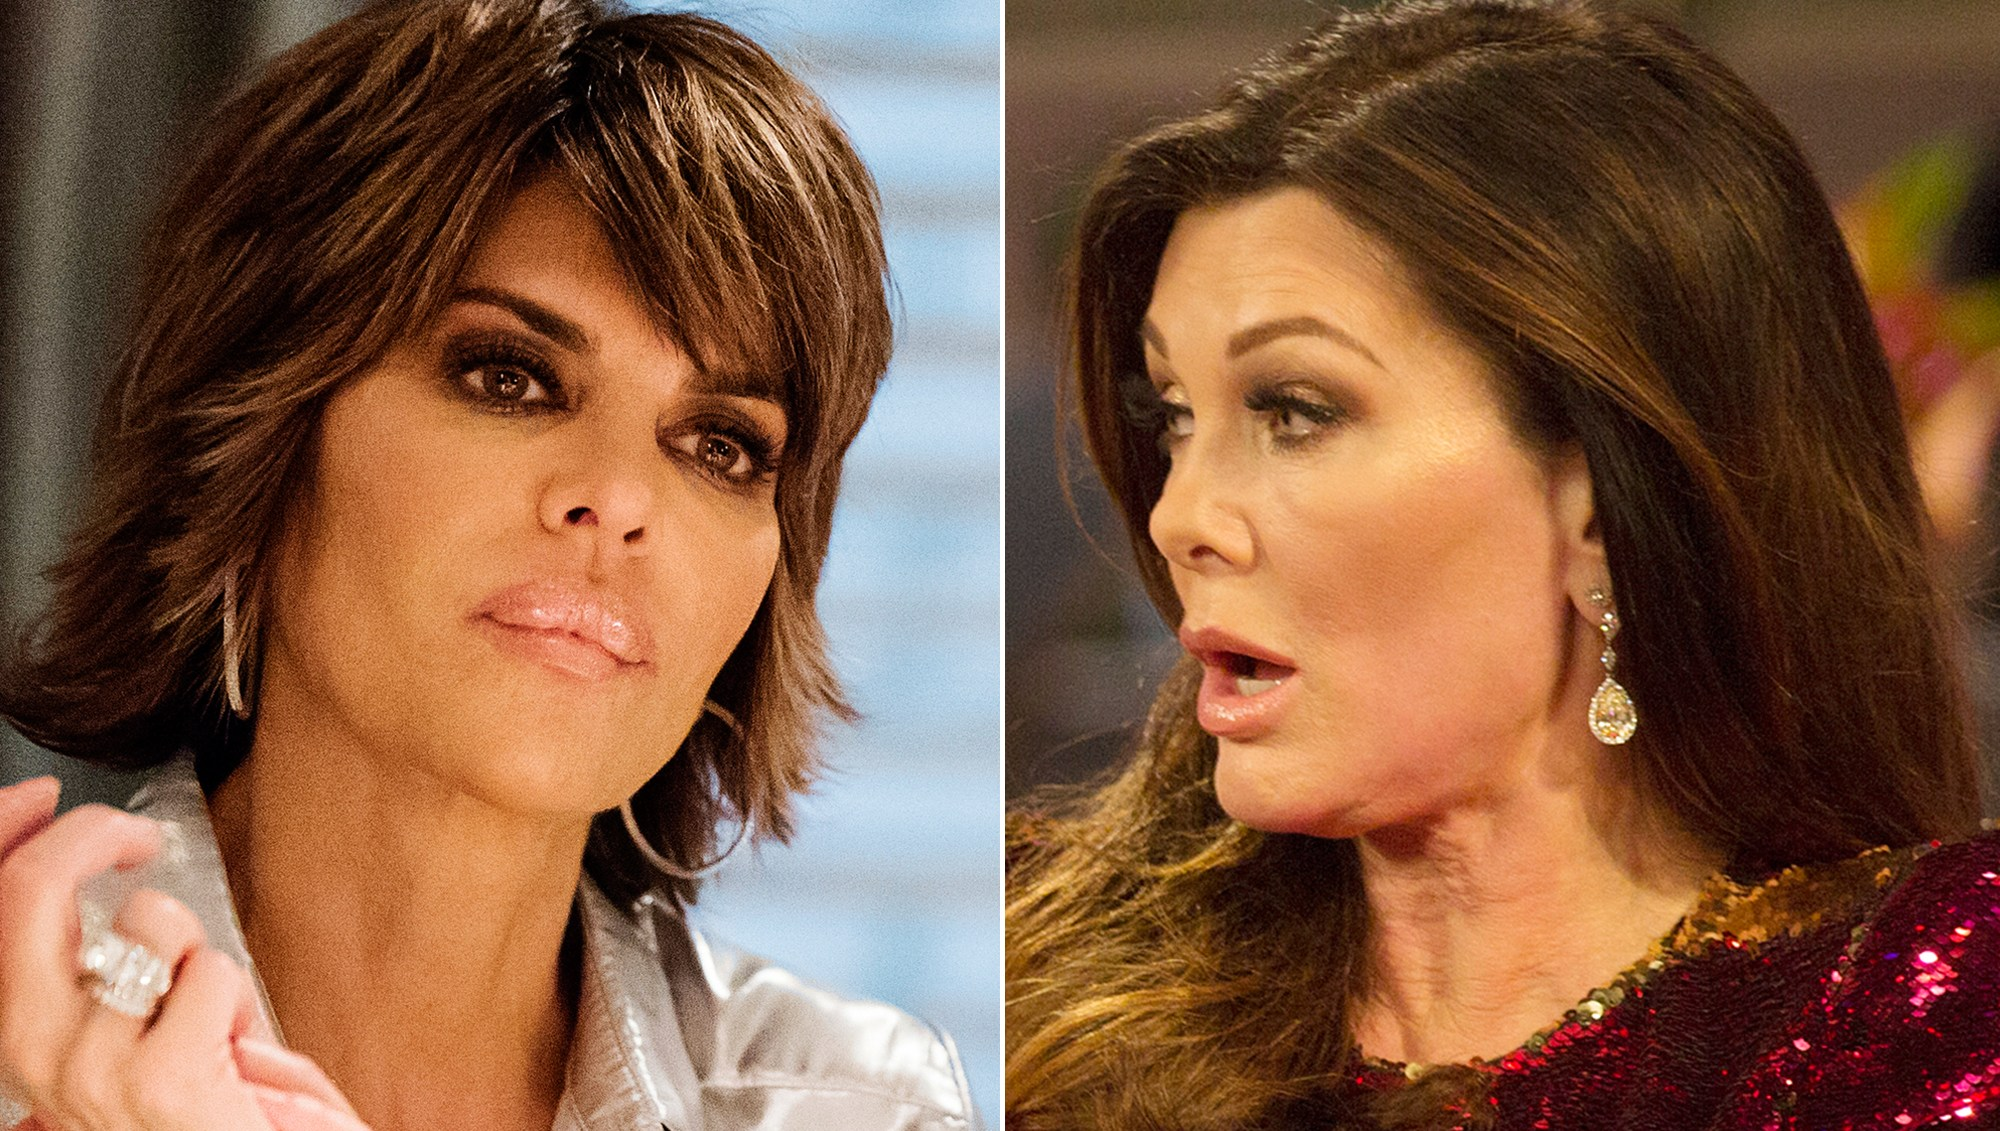 Lisa Rinna Responds to Fan Backlash After Claiming Lisa Vanderpump Gets Preferential Treatment From Bravo